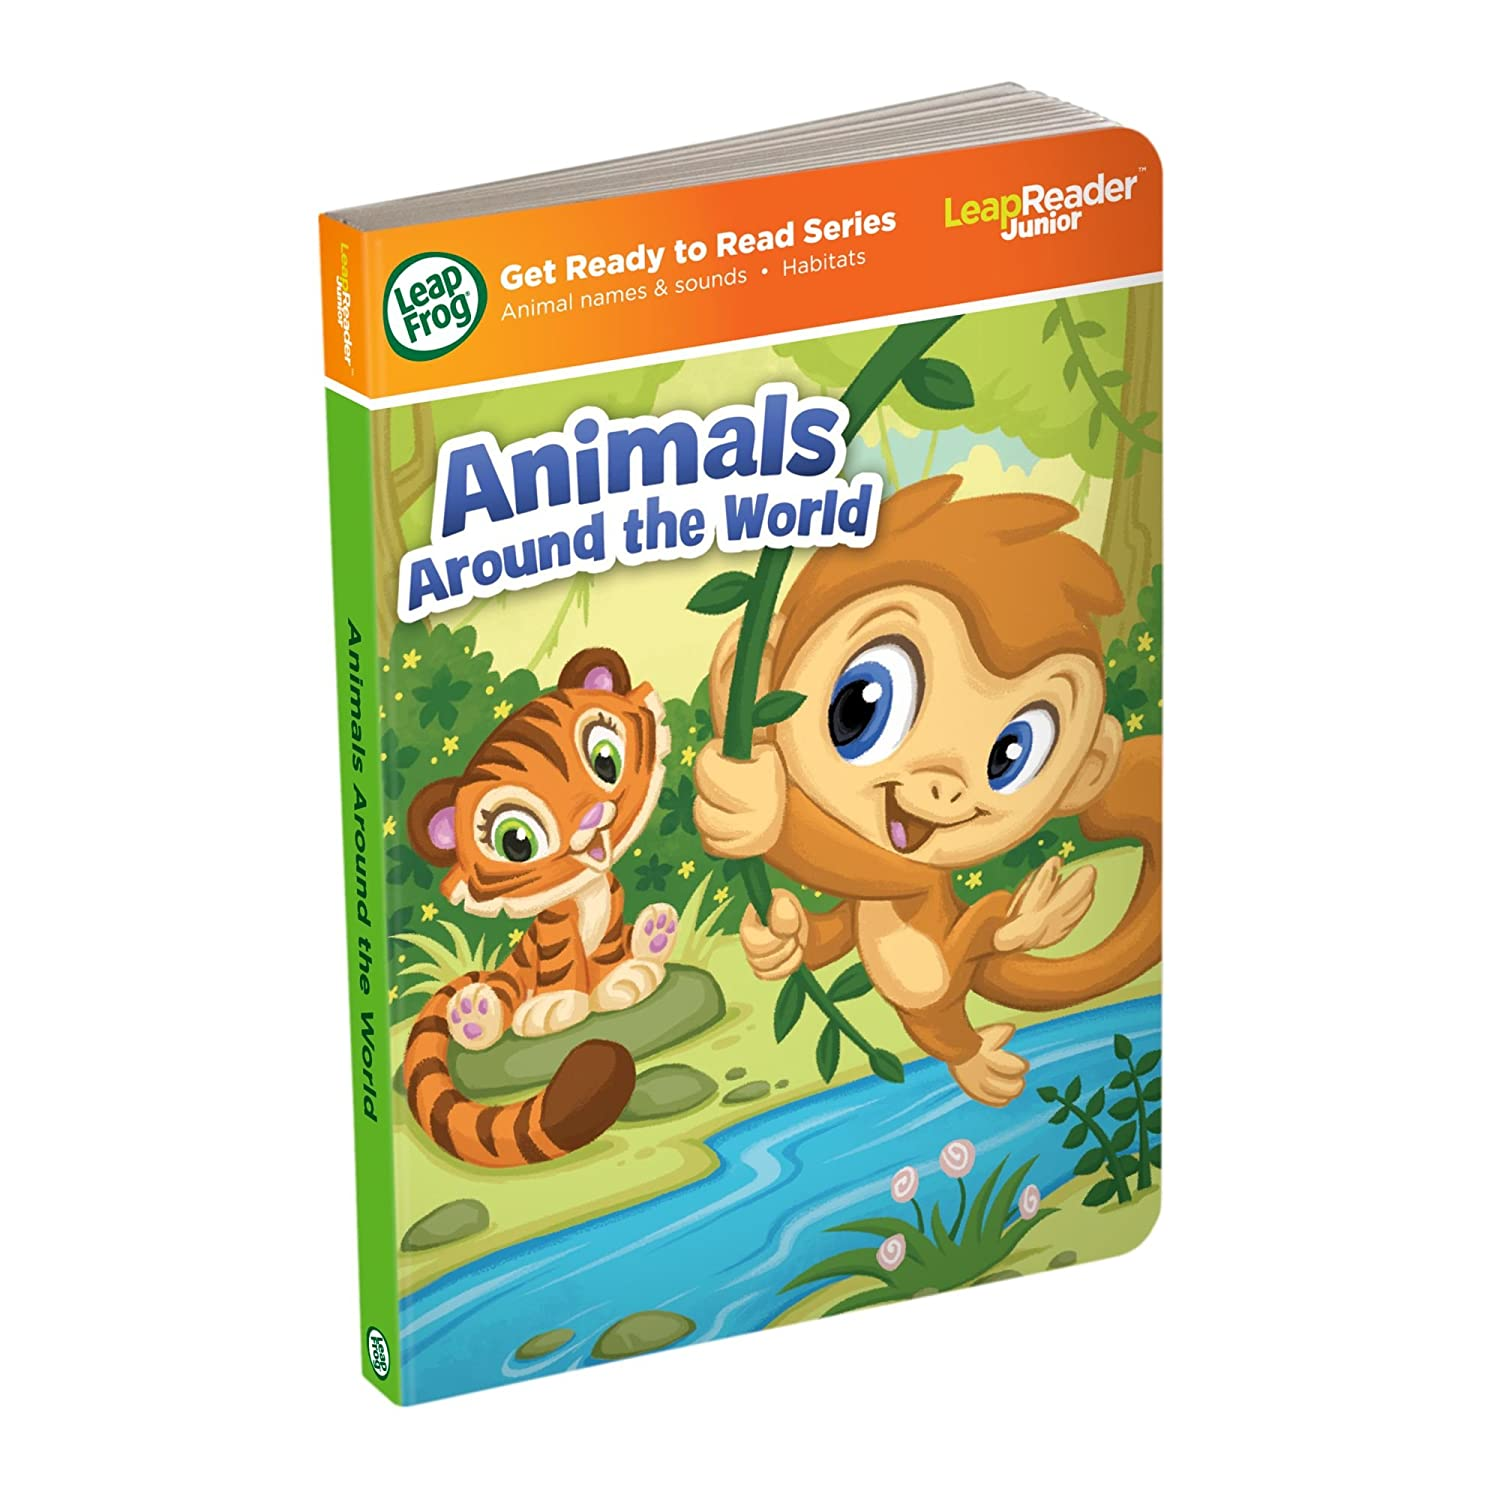 LeapFrog LeapReader Junior Book Animals Around the World works with Tag Junior